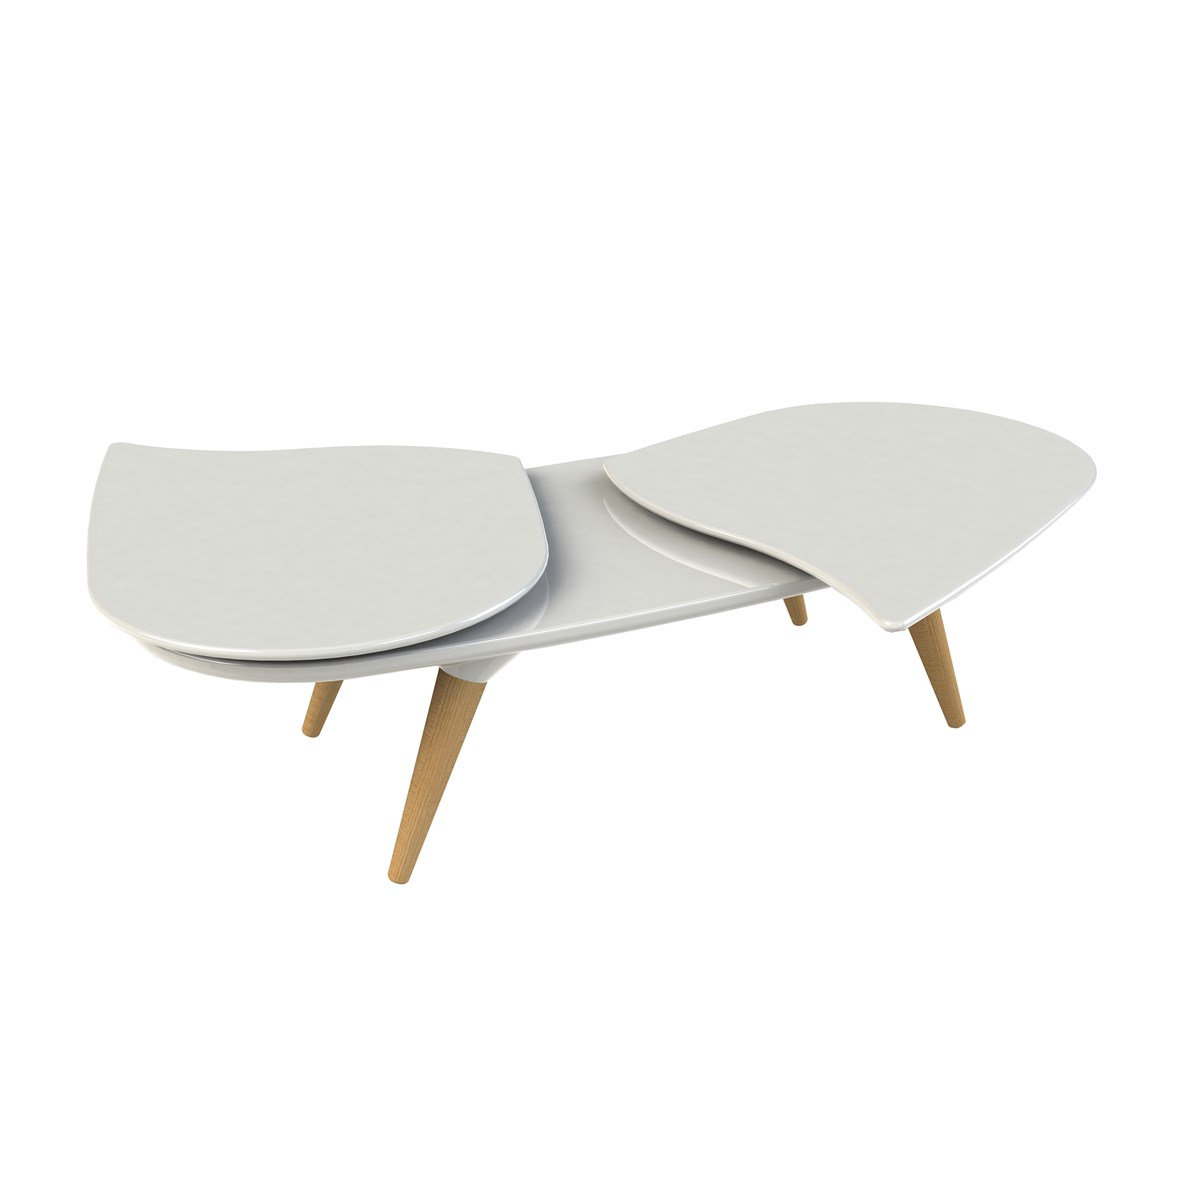 Table basse transformable en table haute ikea valdiz Table basse transformable ikea